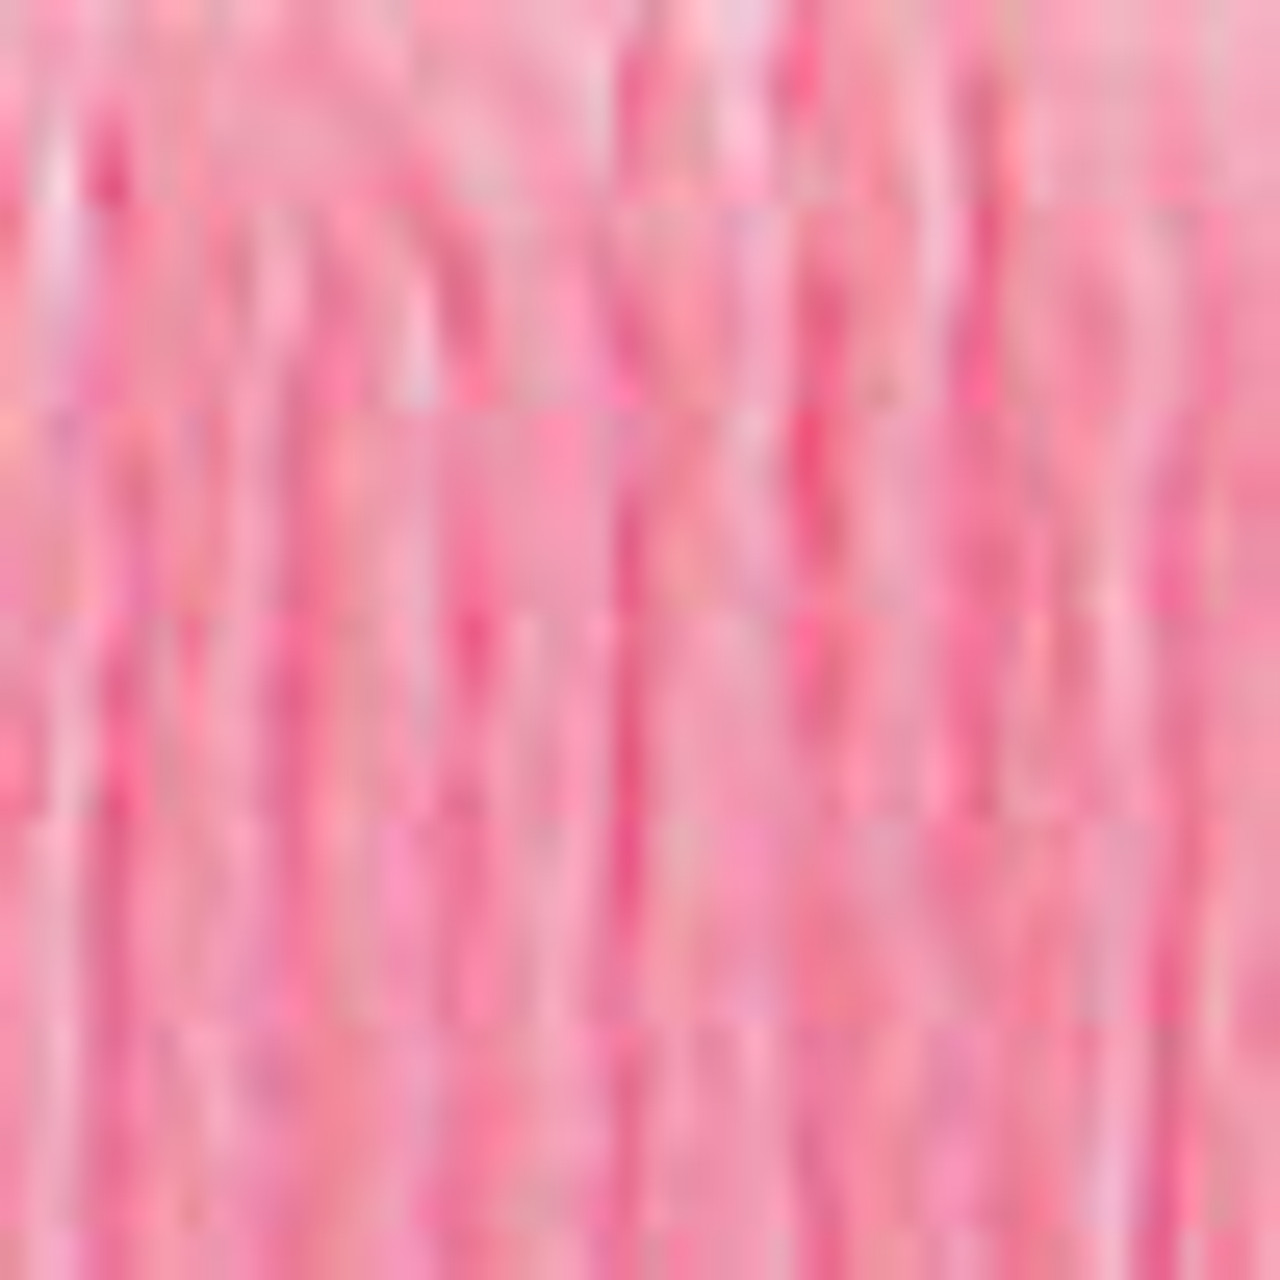 DMC # 3806 Light Cyclamen Pink Floss / Thread